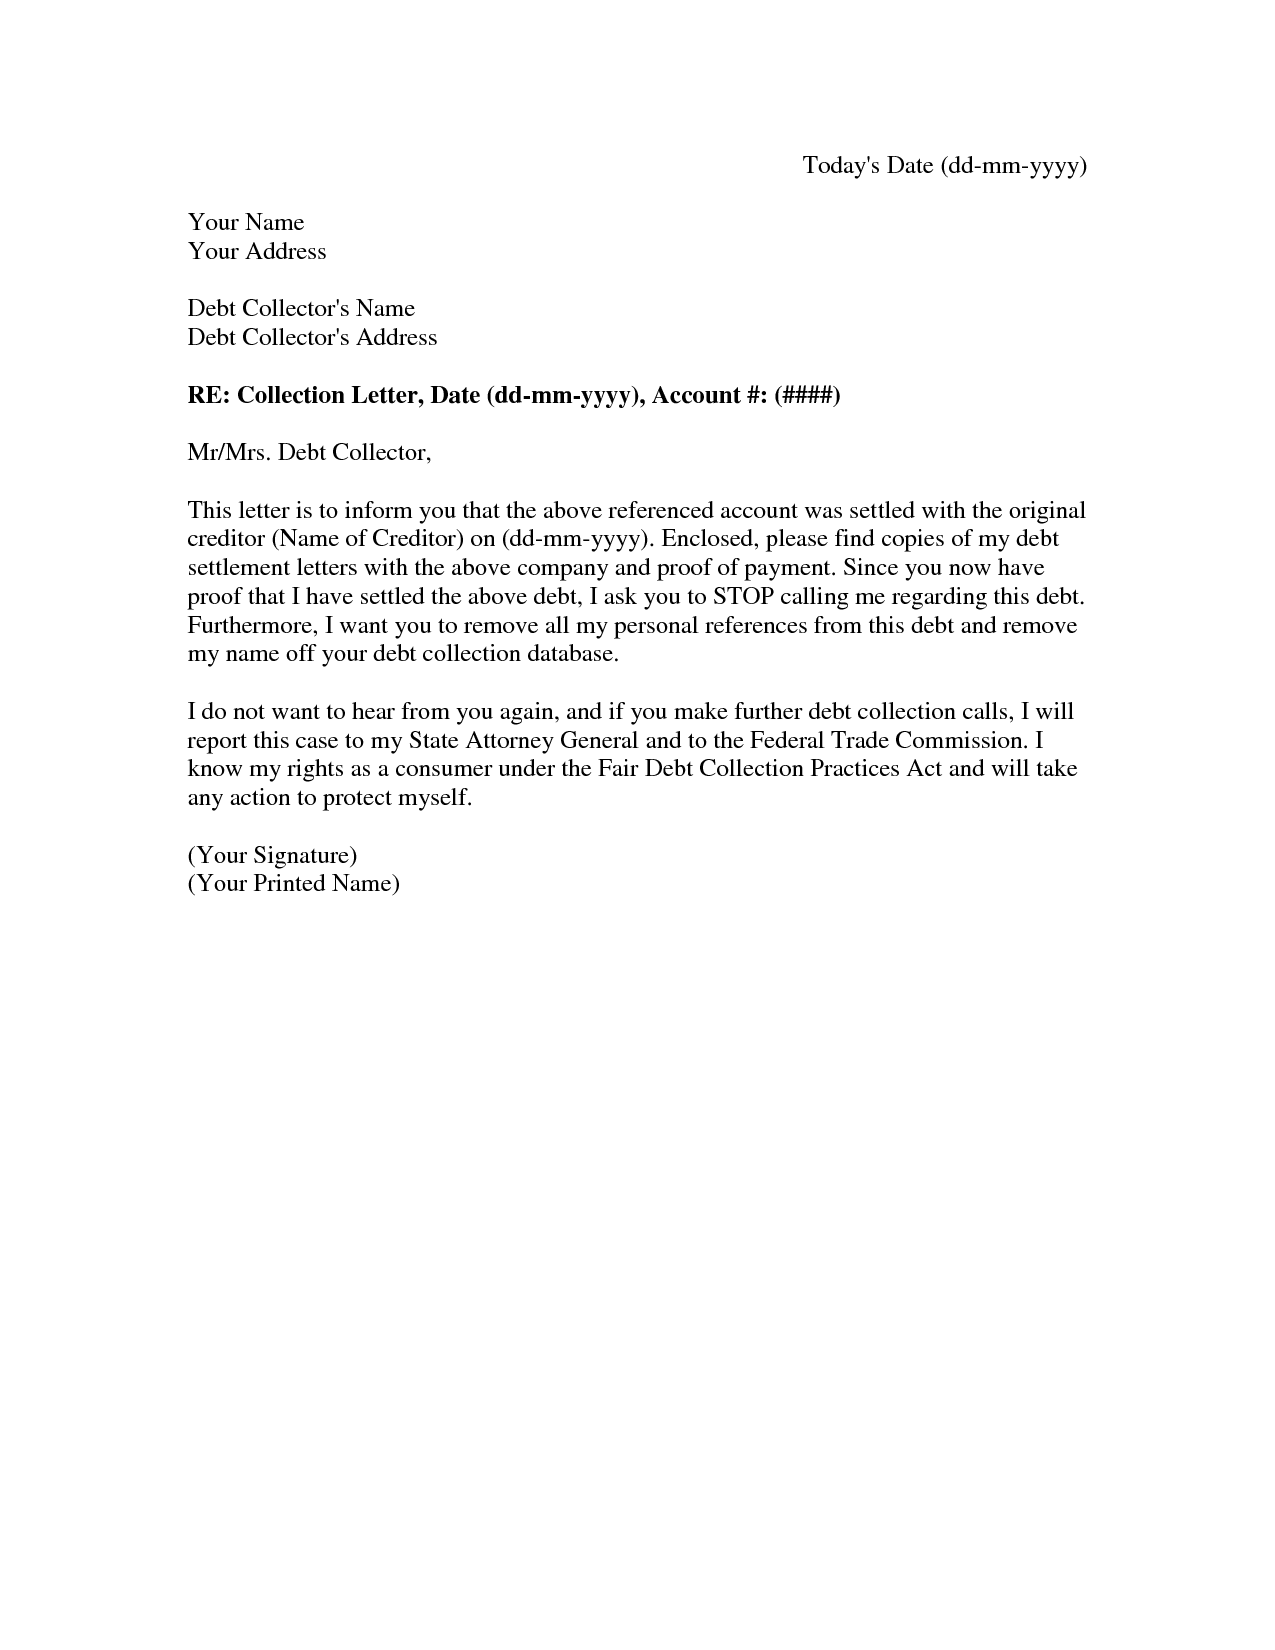 Collection Settlement Letter - A Debt Settlement Agreement Letter ...